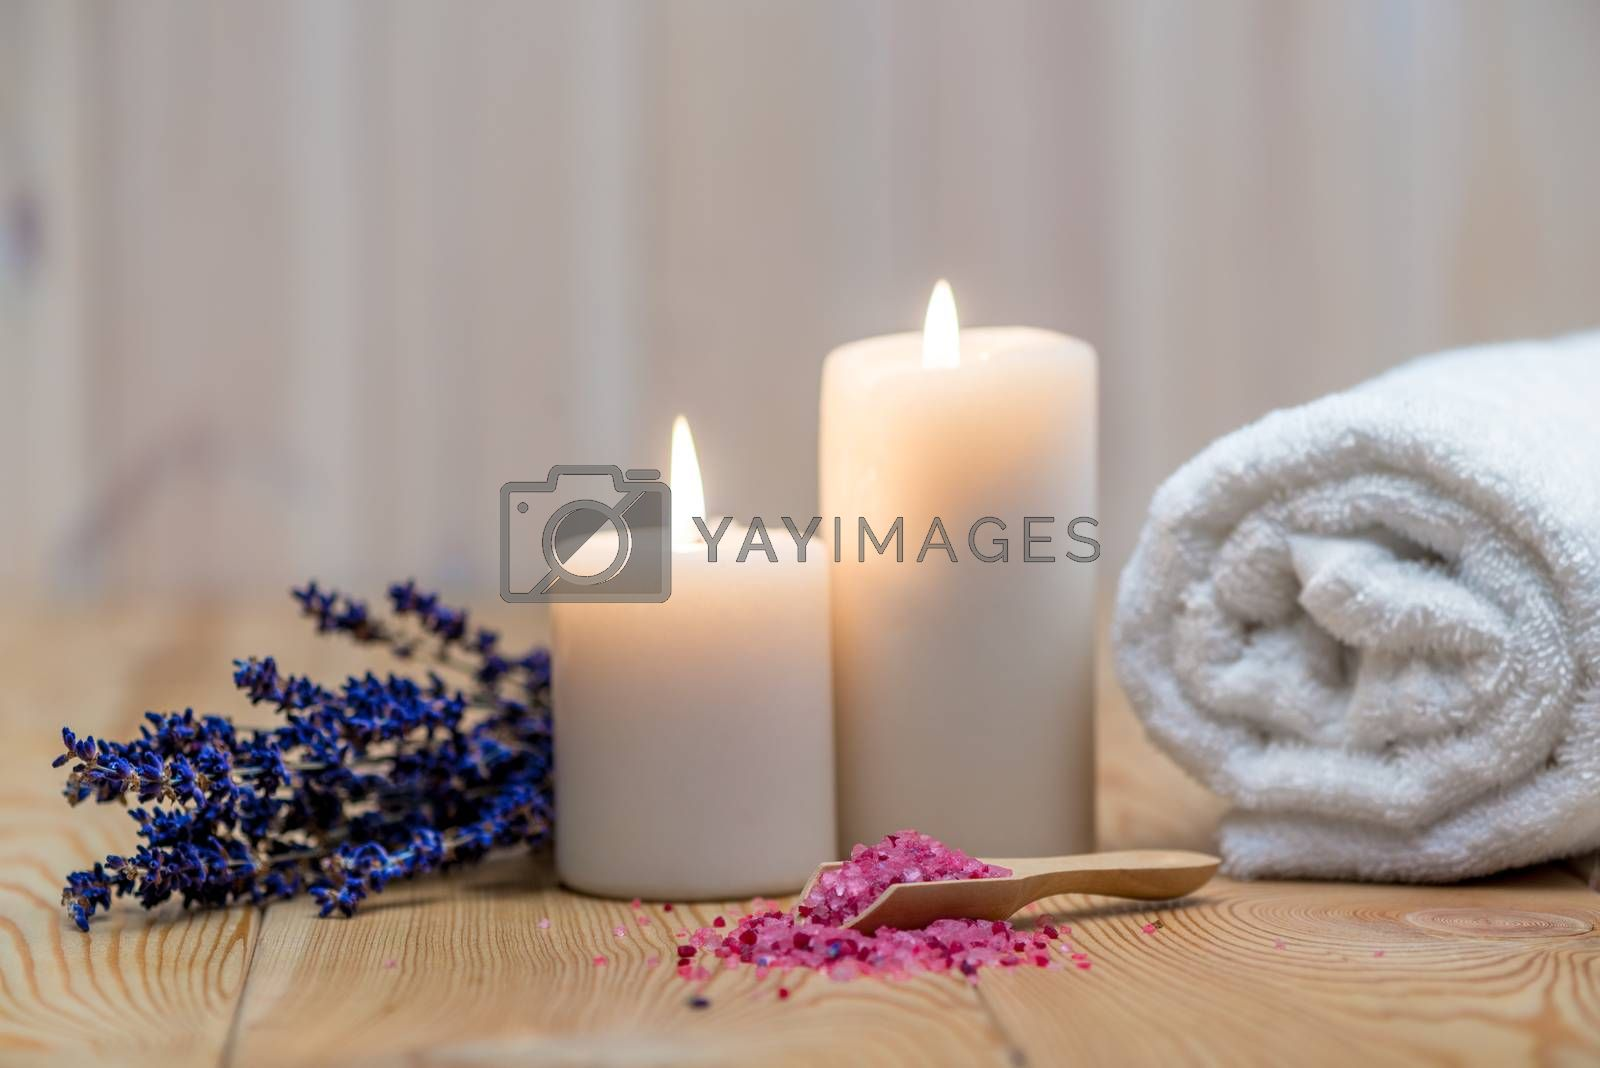 lavender, burning candles and sea salt for spa treatment and rel by Labunskiy K.